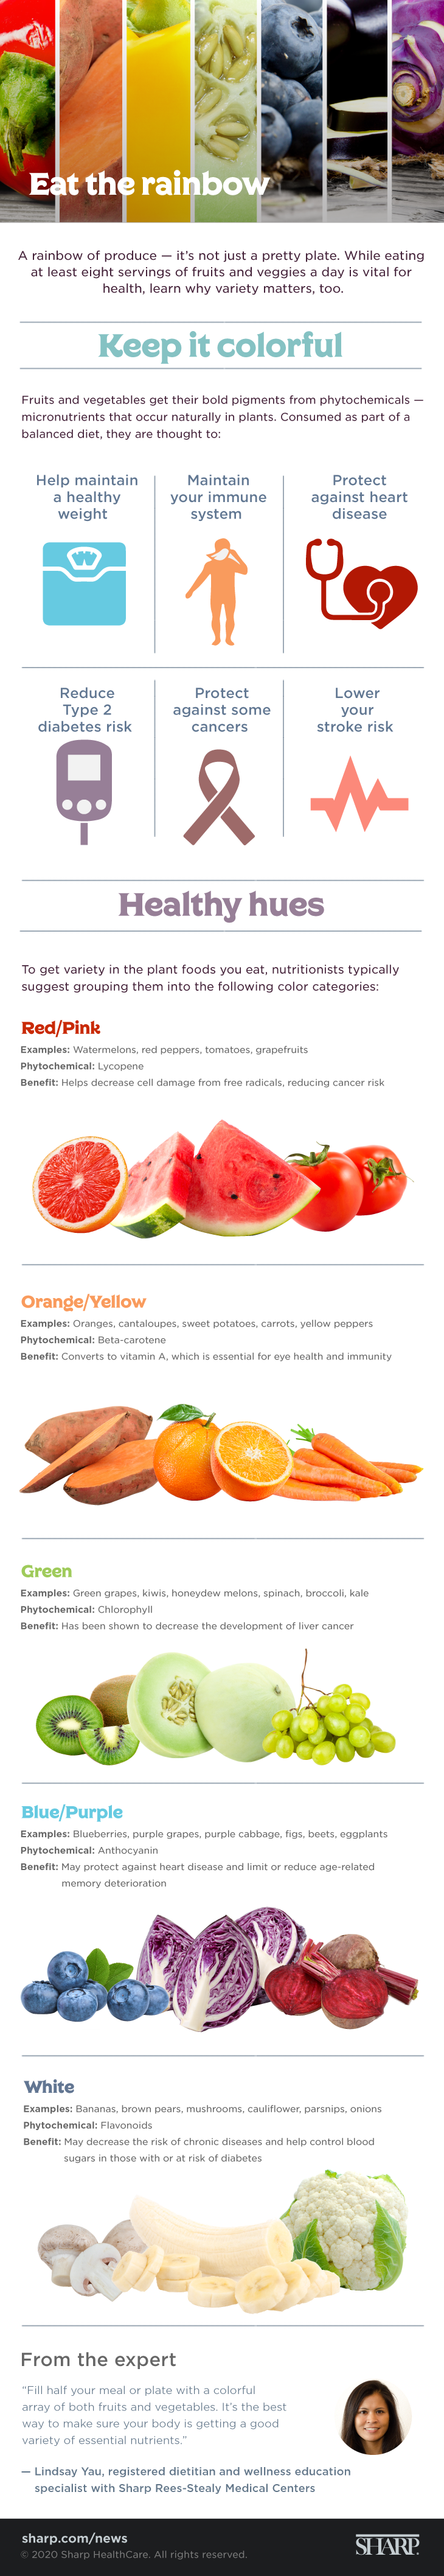 Eat the rainbow (infographic). A rainbow of produce - it's not just a pretty plate. While eating at least eight servings of fruits and veggies a day is vital for health, learn why variety matters, too. Keep it colorful. Fruits and vegetables get their bold pigments from phytochemicals - micronutrients that occur naturally in plants. Consumed as part of a balanced diet, they are thought to: Help maintain a healthy weight. Maintain your immue system. Protect against heart disease. Reduce Type 2 diabetes risk. Protect against some cancers. Lower your stroke risk. Healthy hues. To get variety in the plant foods you eat, nutritionists typically suggest grouping them into the following color categories: Red/Pink. Examples: Watermelons, red peppers, tomatoes, grapefruits. Phytochemical: Lycopene. Benefit: Helps decrease cell damage from free radicals, reducing cancer risk. Orange/Yellow. Examples: Oranges, cantaloupes, sweet potatoes, carrots, yellow peppers. Phytochemical: Beta-carotene. Benefit: Converts to vitamin A, which is essential for eye health and immunity. Green. Examples: Green grapes, kiwis, honeydew melons, spinach, broccoli, kale. Phytochemical: Chlorophyll. Benefit: Has been shown to decrease the development of liver cancer. Blue/Purple. Examples: Blueberries, purple grapes, purple cabbage, figs, beets, eggplants. Phytochemical: Anthocyanin. Benefit: May protect against heart disease and limit or reduce age-related memory deterioration. White. Examples: Bananas, brown pears, mushrooms, cauliflower, parsnips, onions. Phytochemical: Flavonoids. Benefit: May decrease the risk of chronic diseases and help control blood sugars in those with or at risk of diabetes. From the expert. Fill half your meal or plate with a colorful array of both fruits and vegetables. It's the best way to make sure your body is getting a good variety of essential nutrients. - Lindsay Yau, registered dietitian and wellness education specialist with Sharp Rees-Stealy Medical Centers. sharp.com/news. @2020 Sharp HealthCare. All rights reserved.